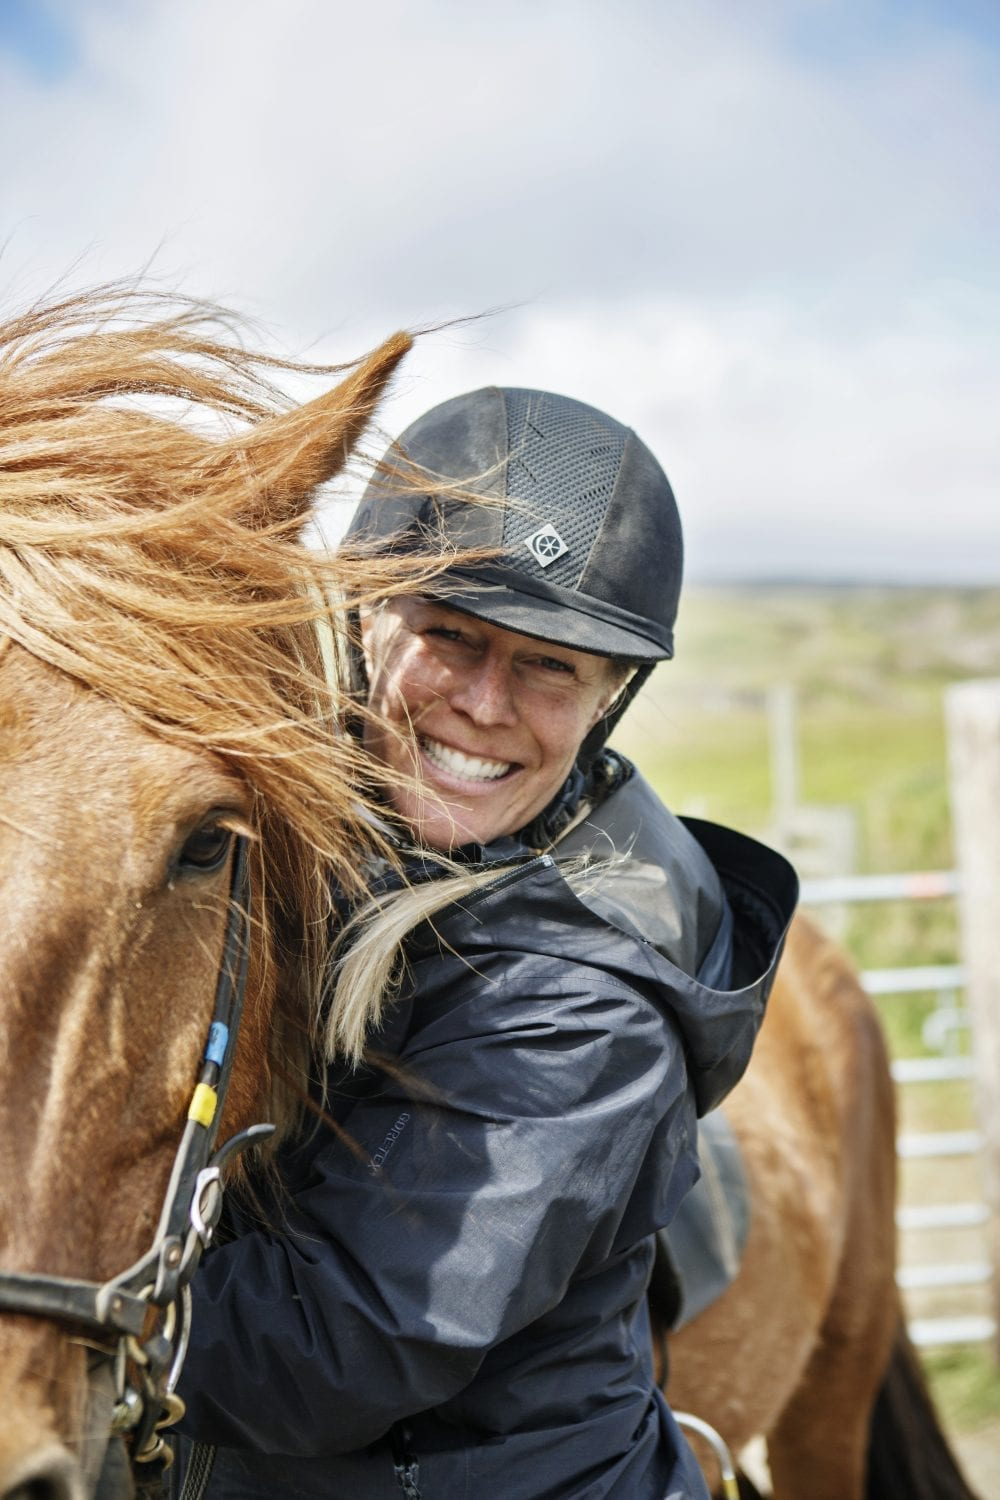 A smiling woman with a helmet embraces her horse